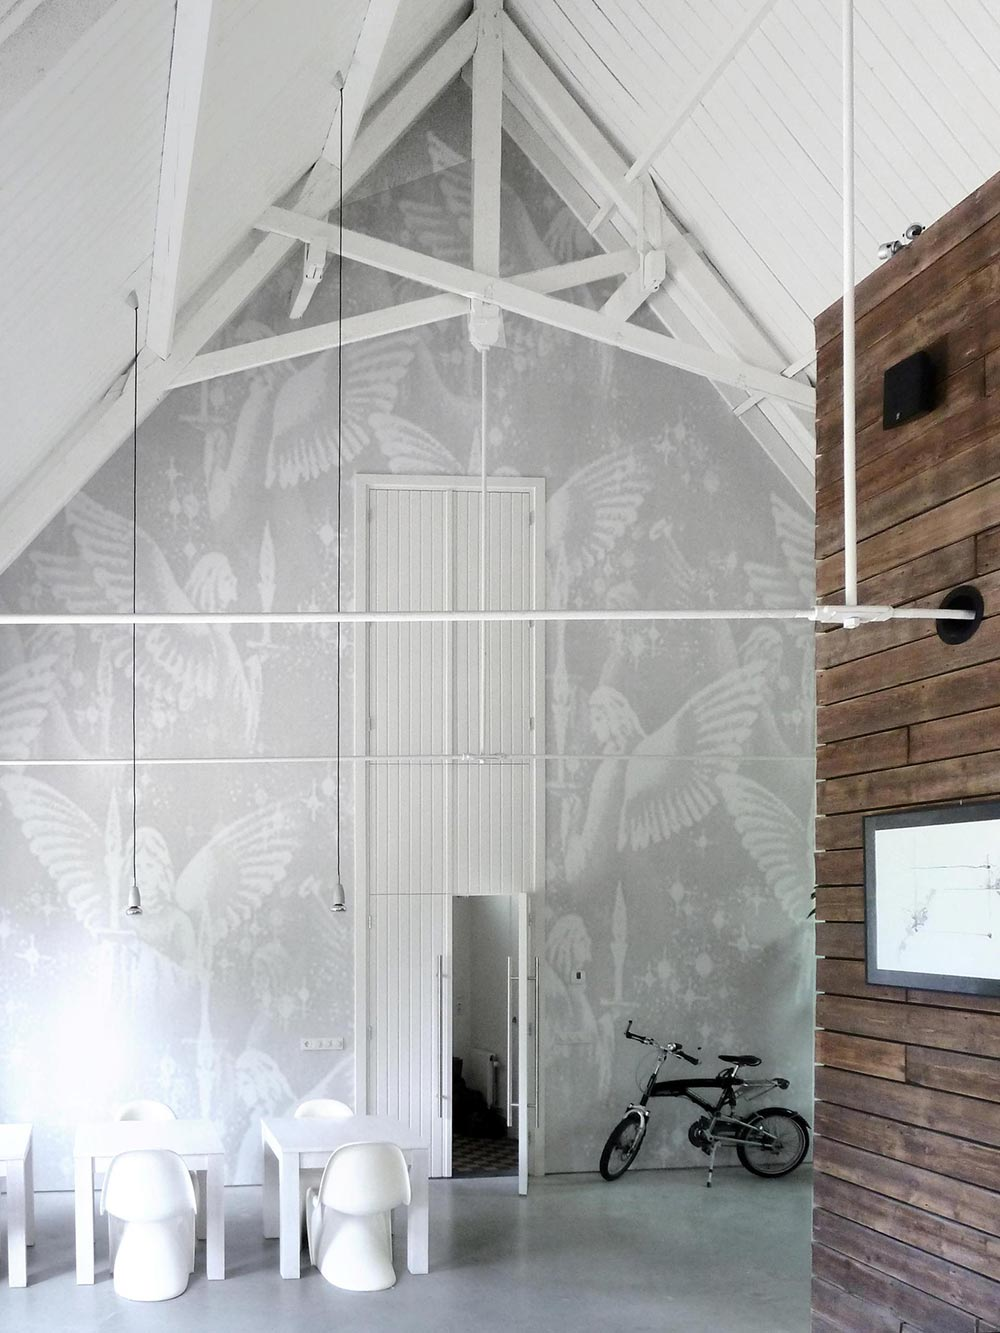 Angel Wallpaper, Unique Loft Conversion in The Netherlands